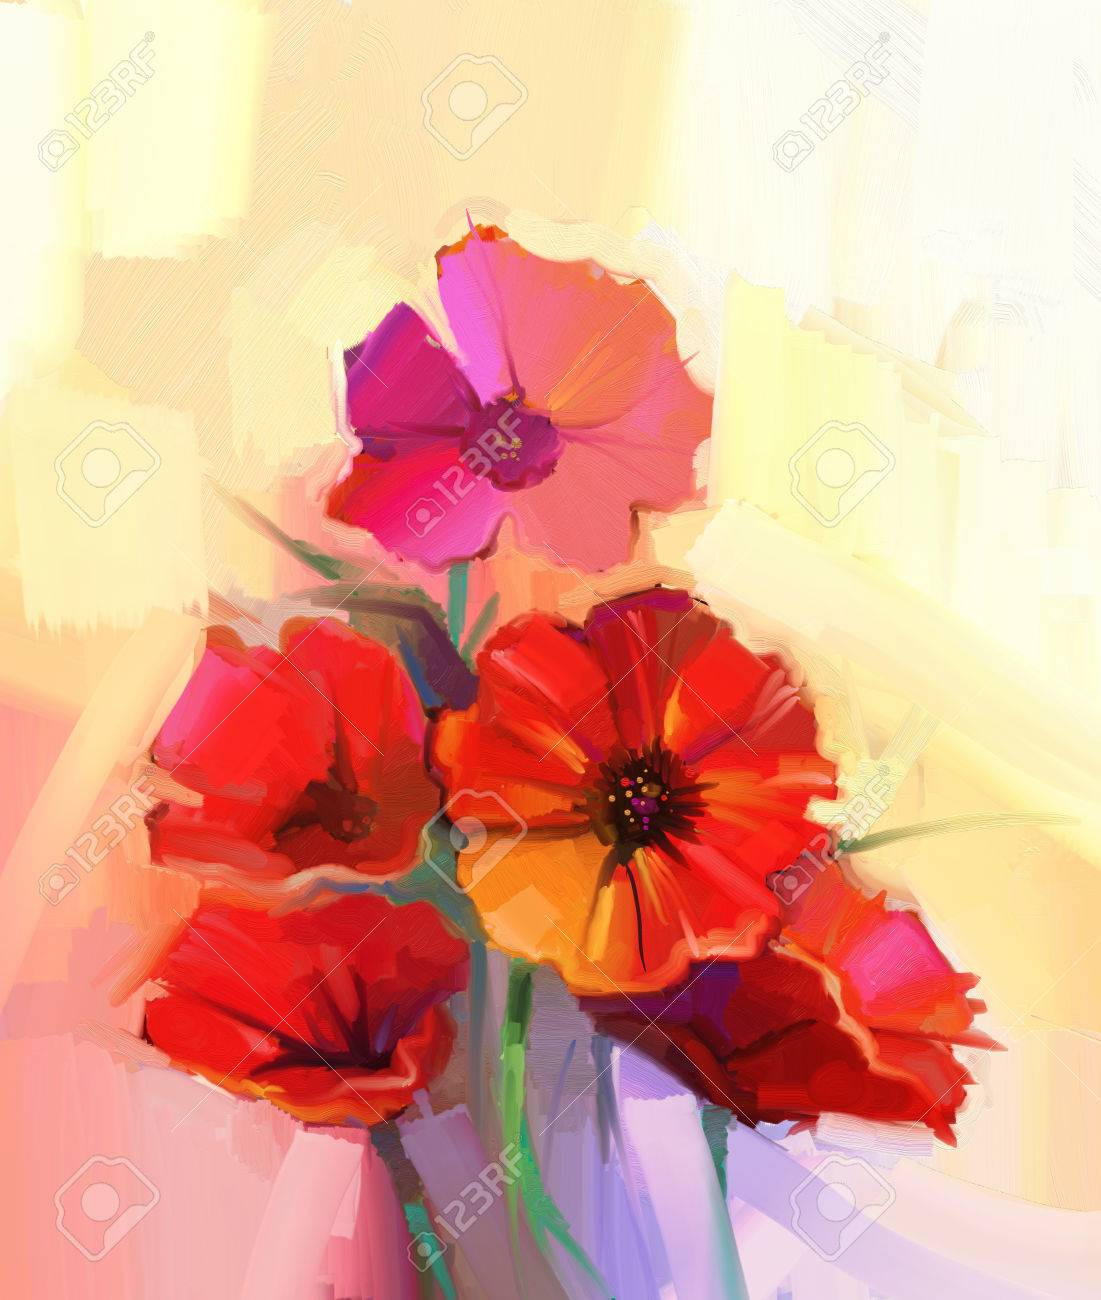 Oil Painting Red Poppy Flowers Flower Paint In Soft Color And